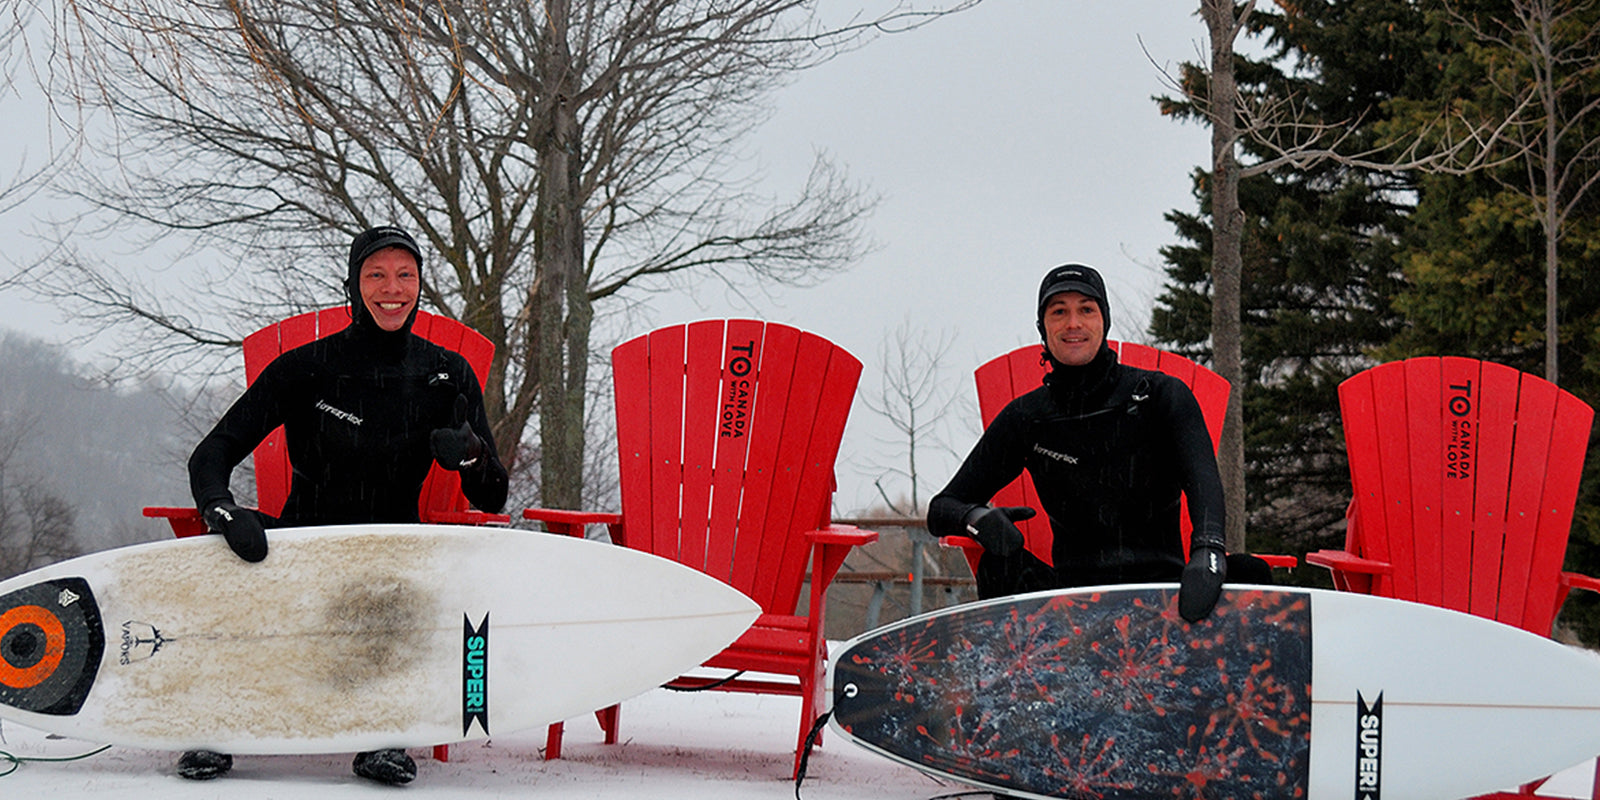 WOW! These Guys Surfed Lake Ontario Toronto in 12Foot Swell, 50 MPH Winds & Freezing Hail